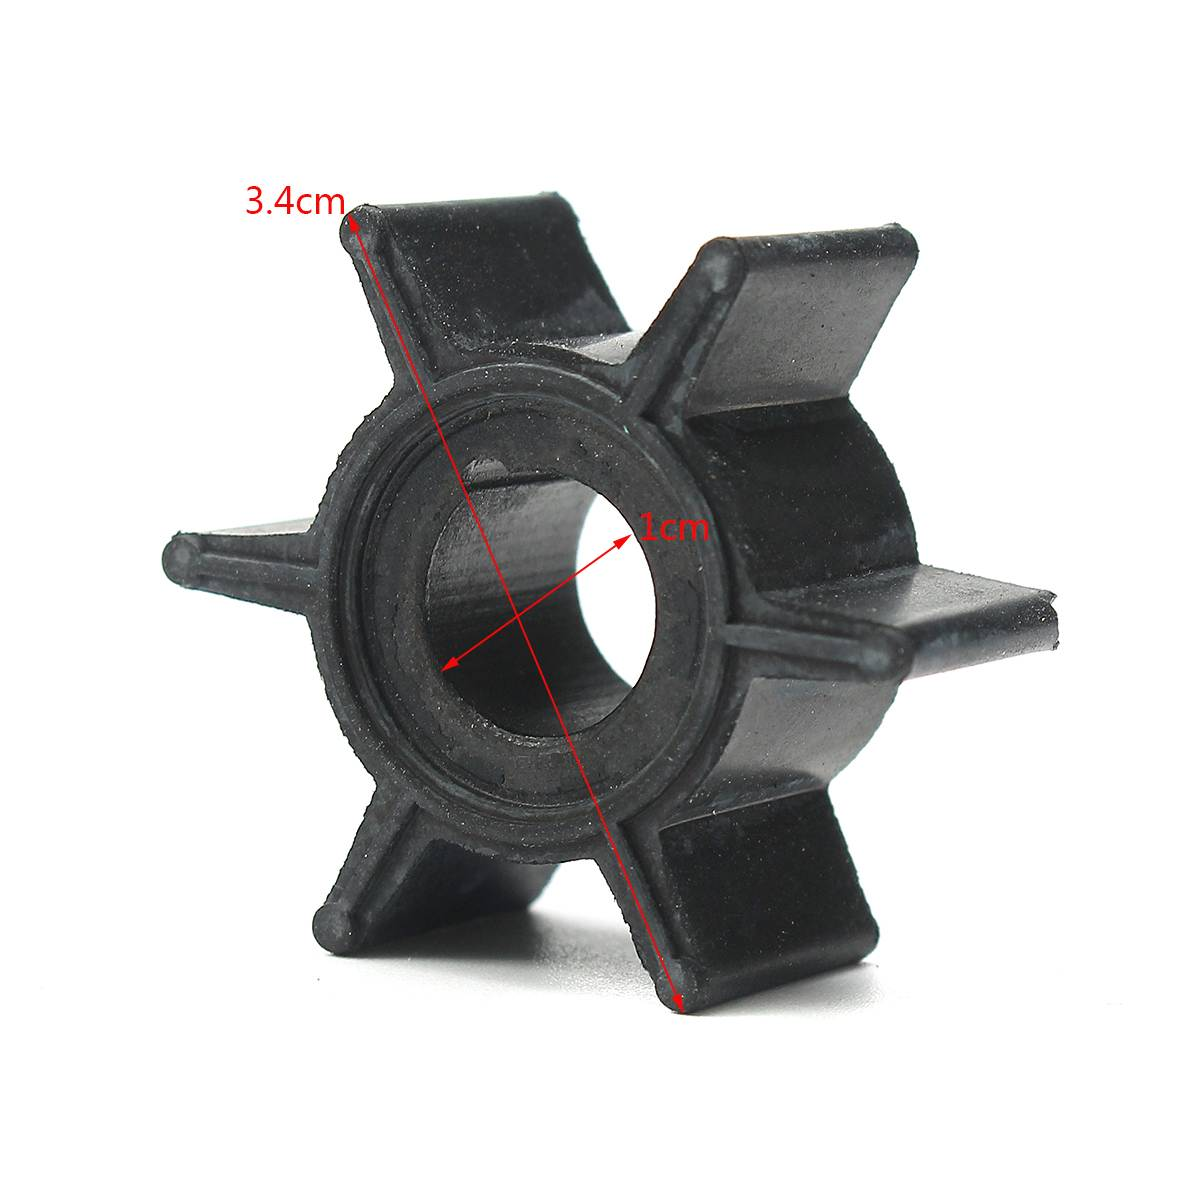 Water Pump Impeller Black Rubber For Tohatsu/Mercury/Sierra 2/2.5/3.5/4/5/6HP Outboard Motor 6 Blades Boat Parts & Accessories image